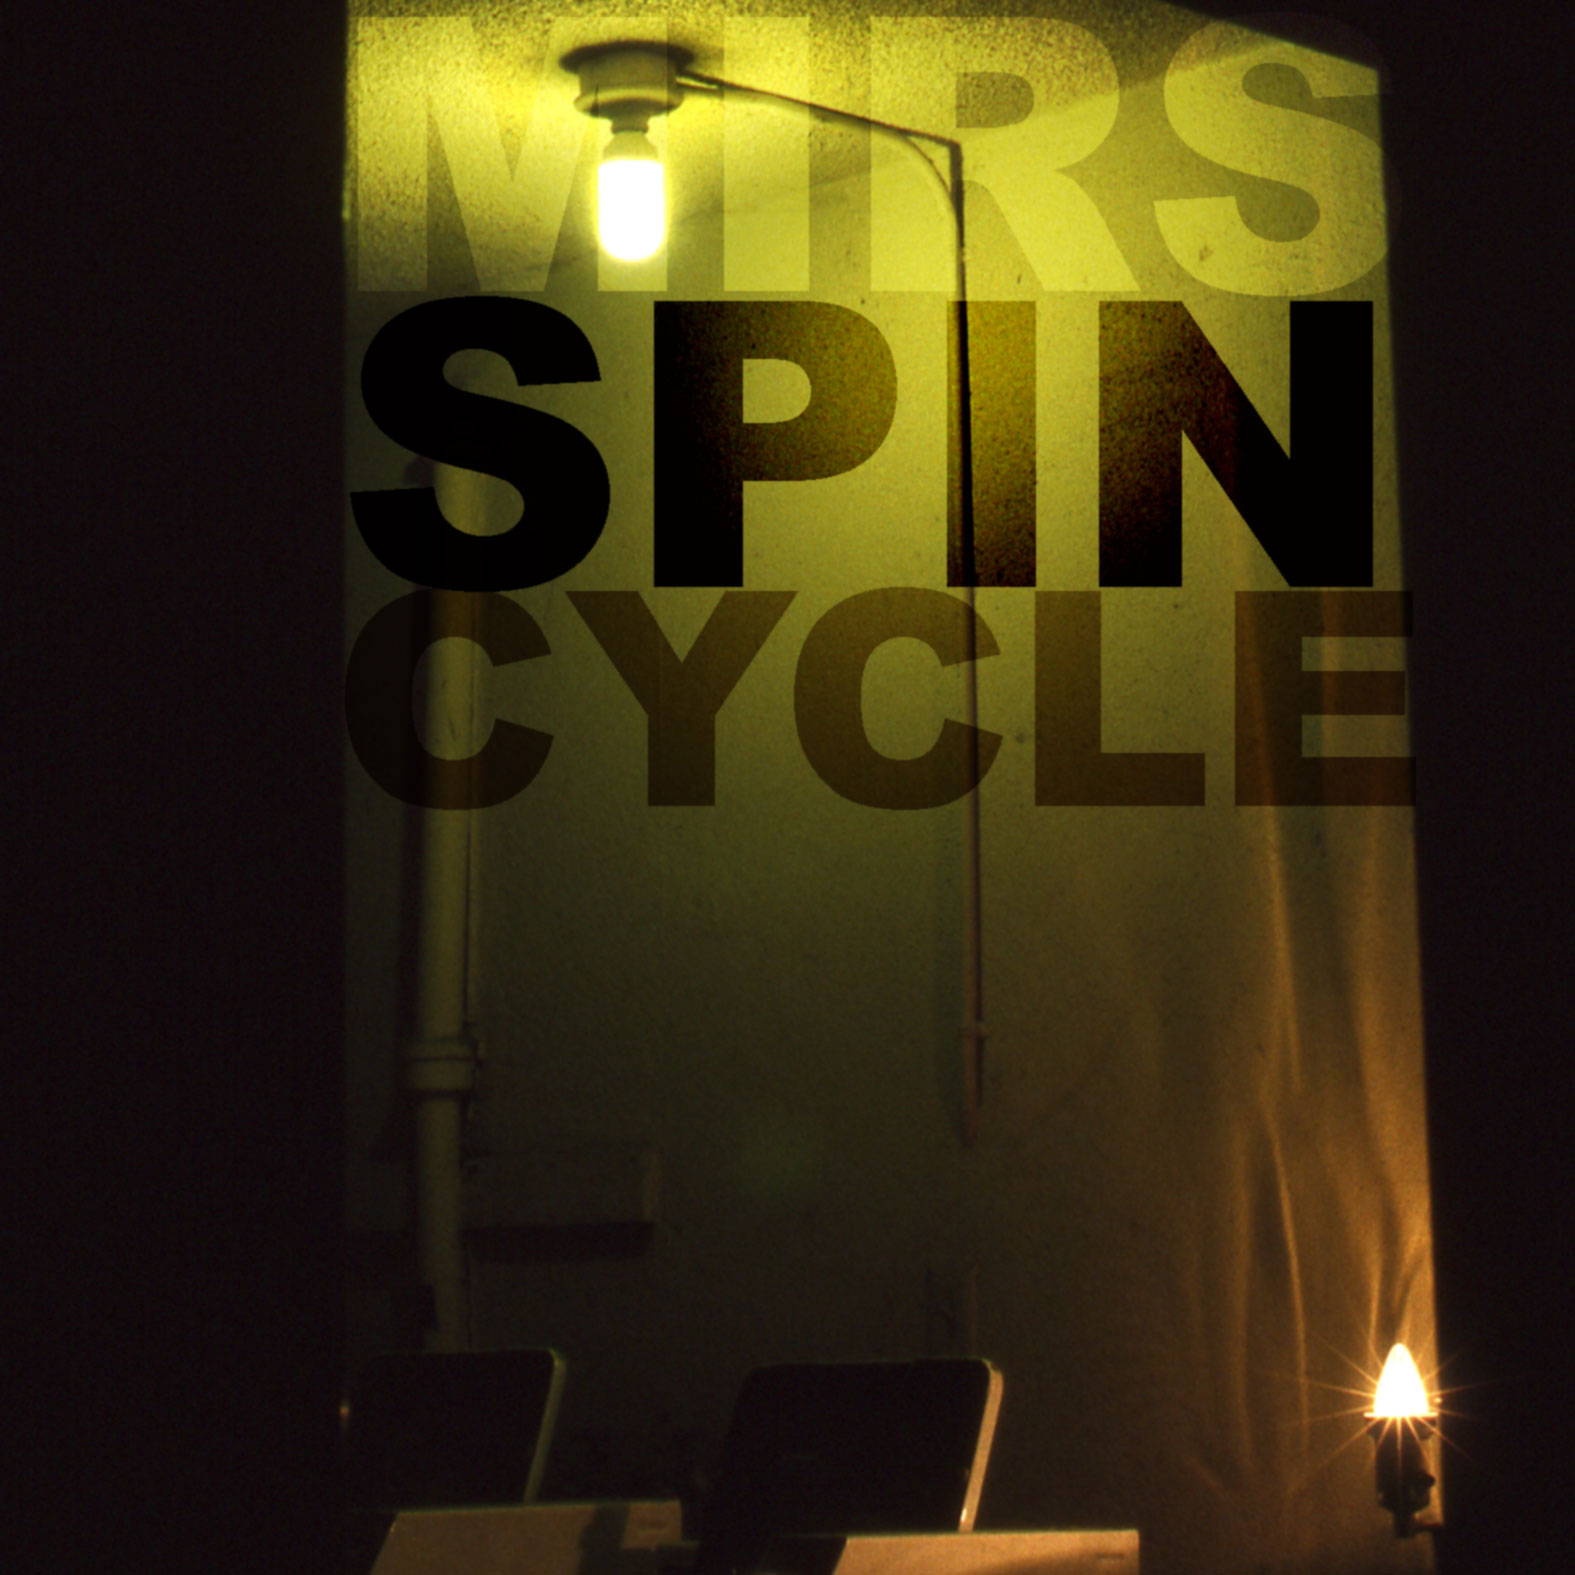 Spin-Cycle-album-art-test.jpg